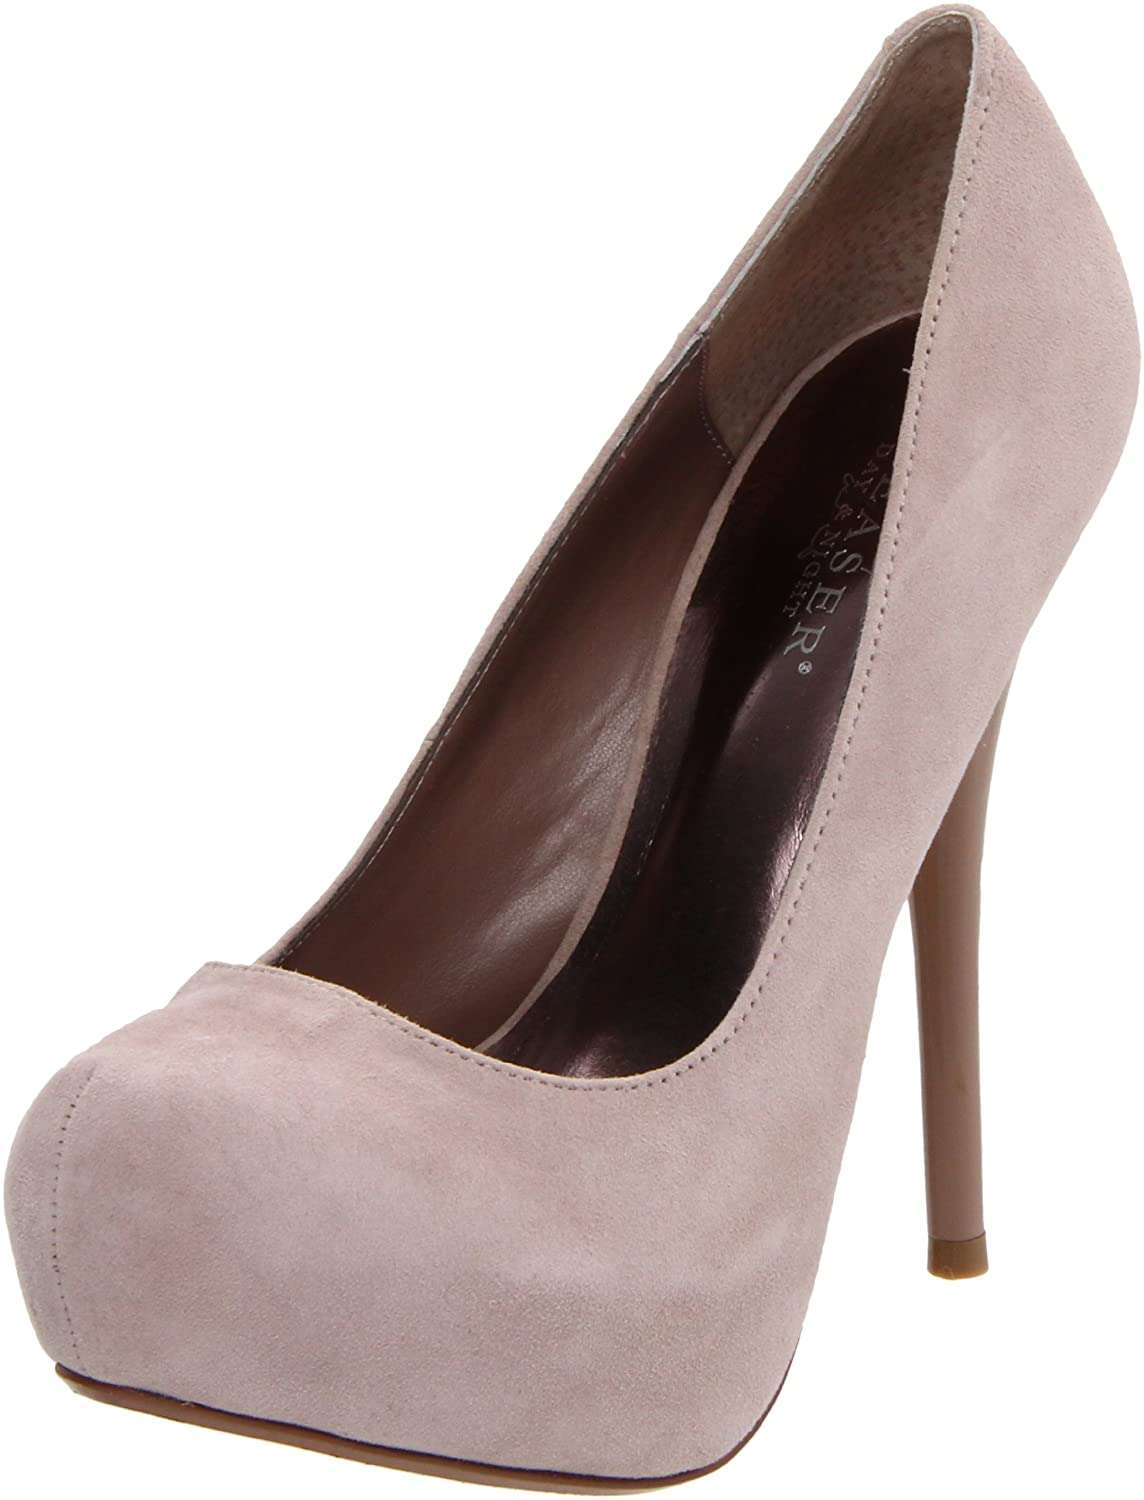 Pleaser Women's Gorgeous-20/BHSUE Platform Pump B0058C0MBC 8 B(M) US|Blush Suede